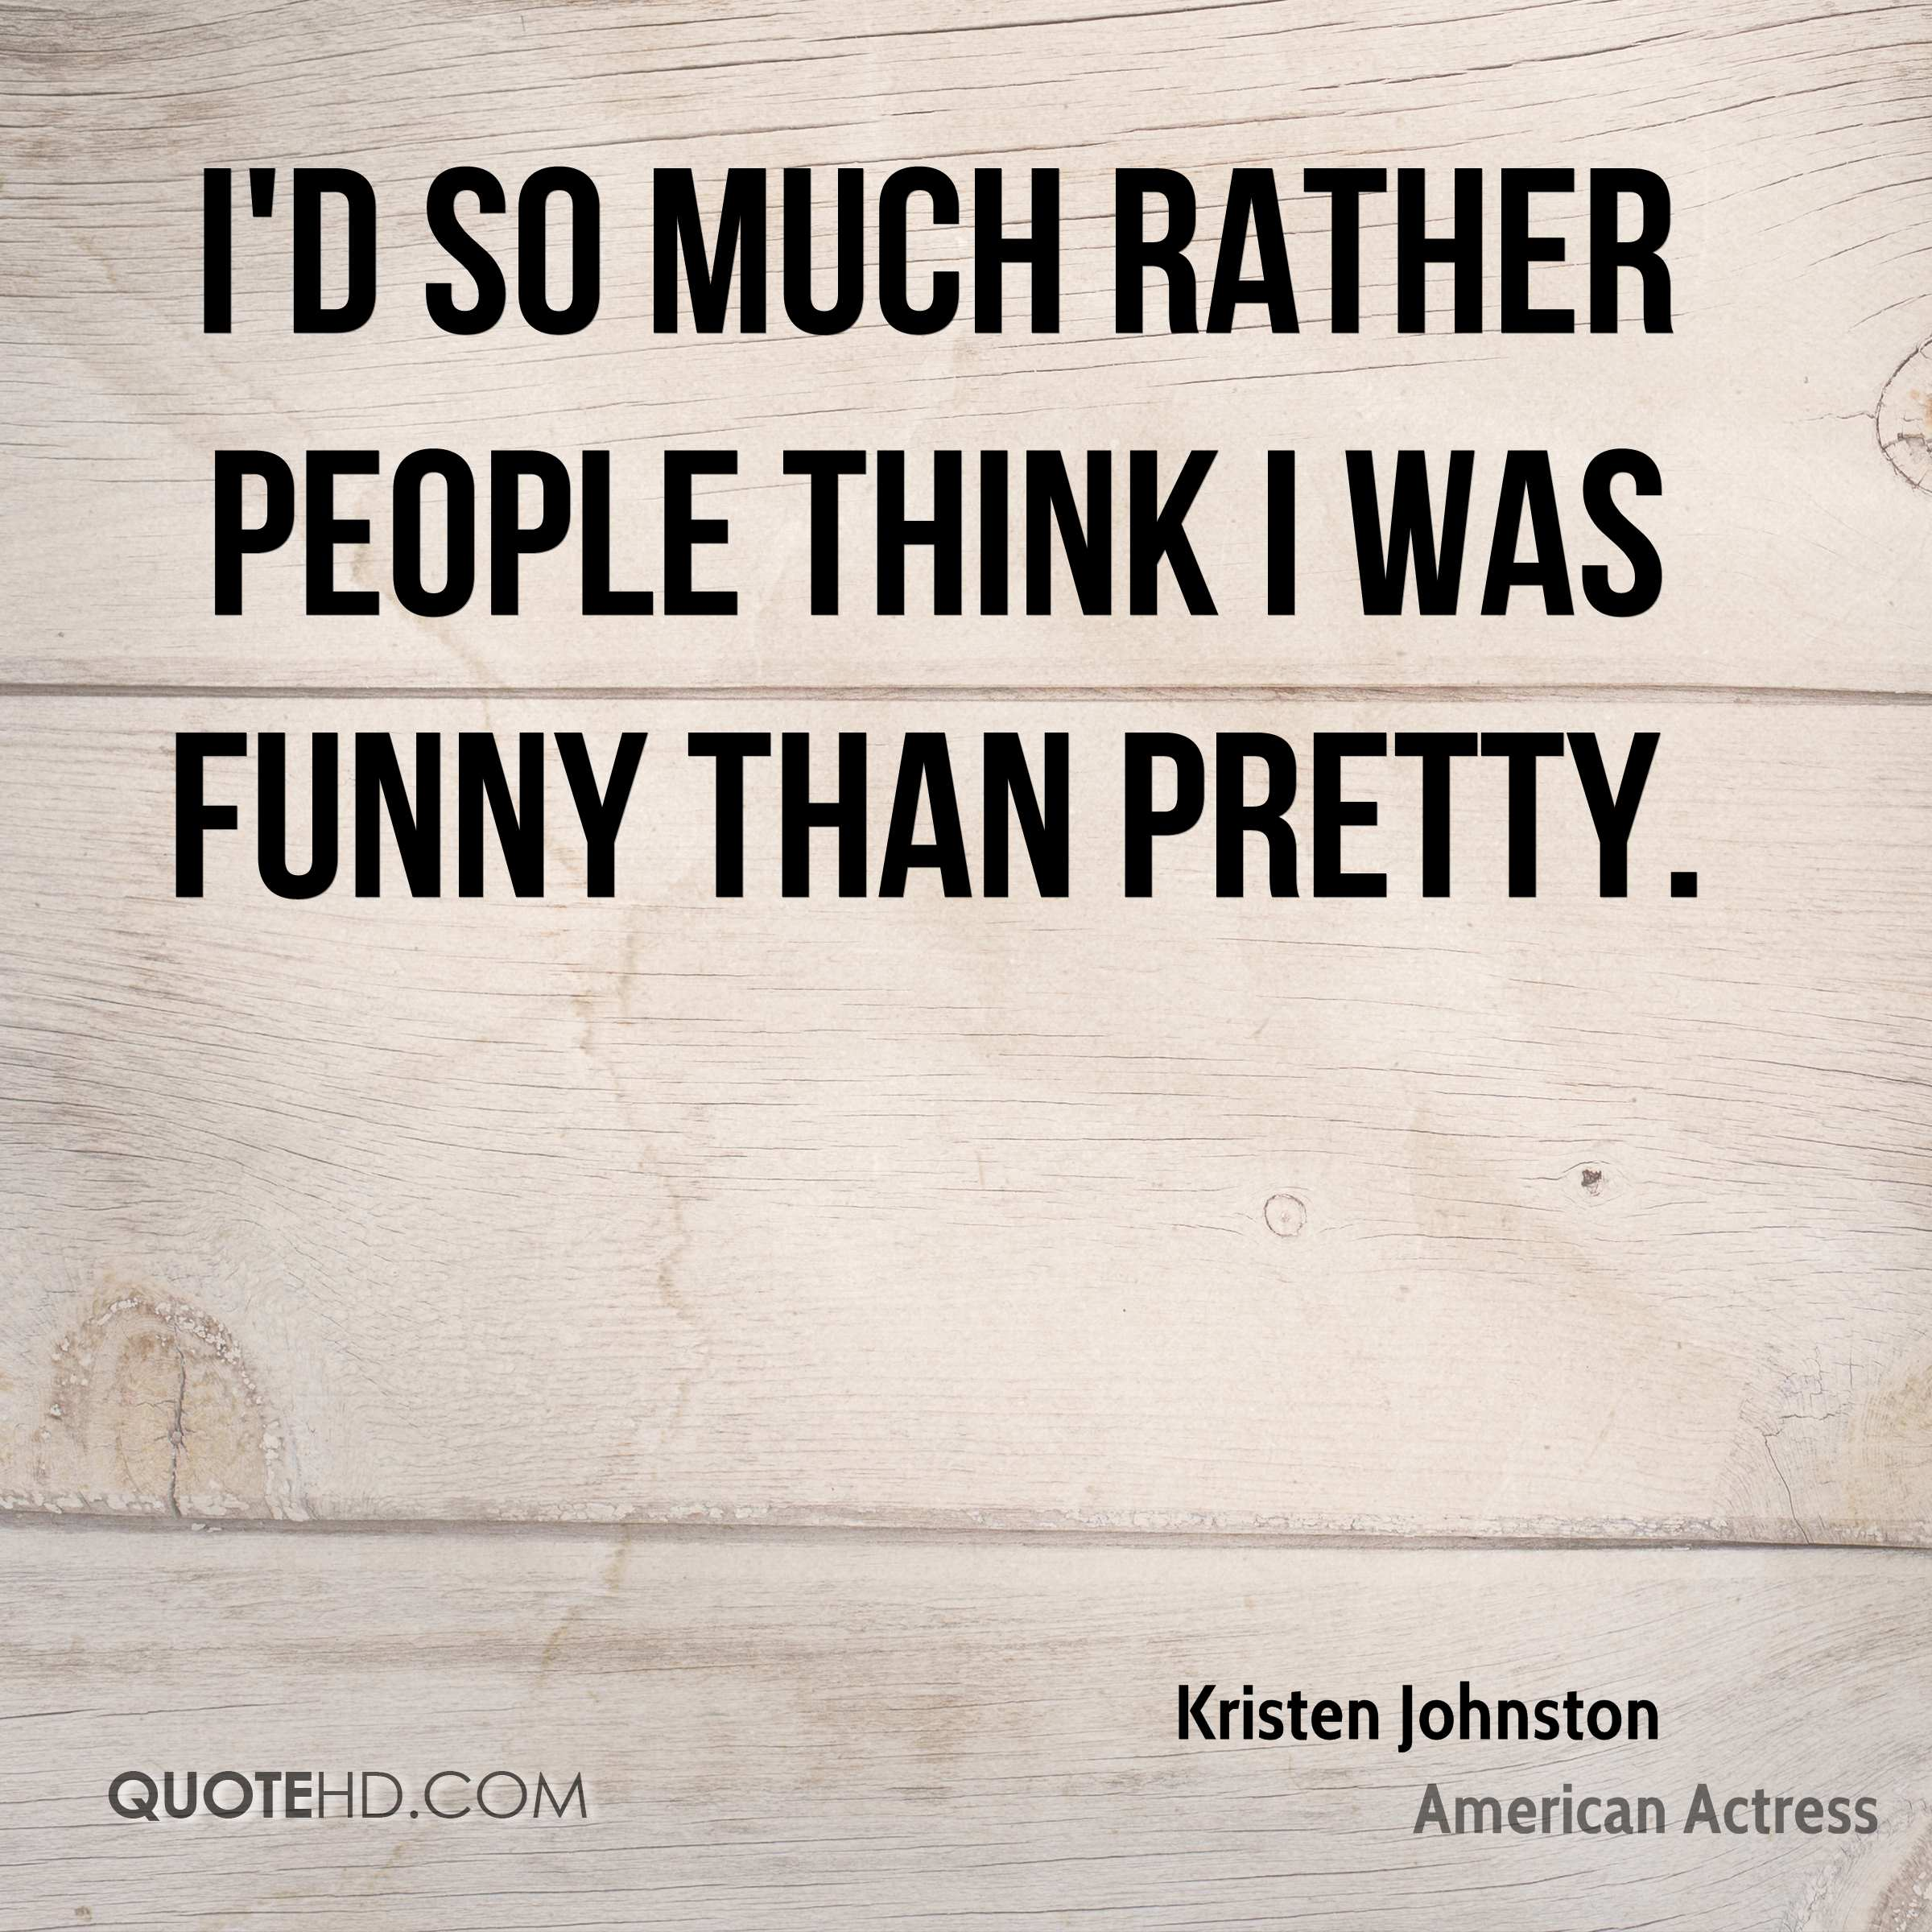 I'd so much rather people think I was funny than pretty.